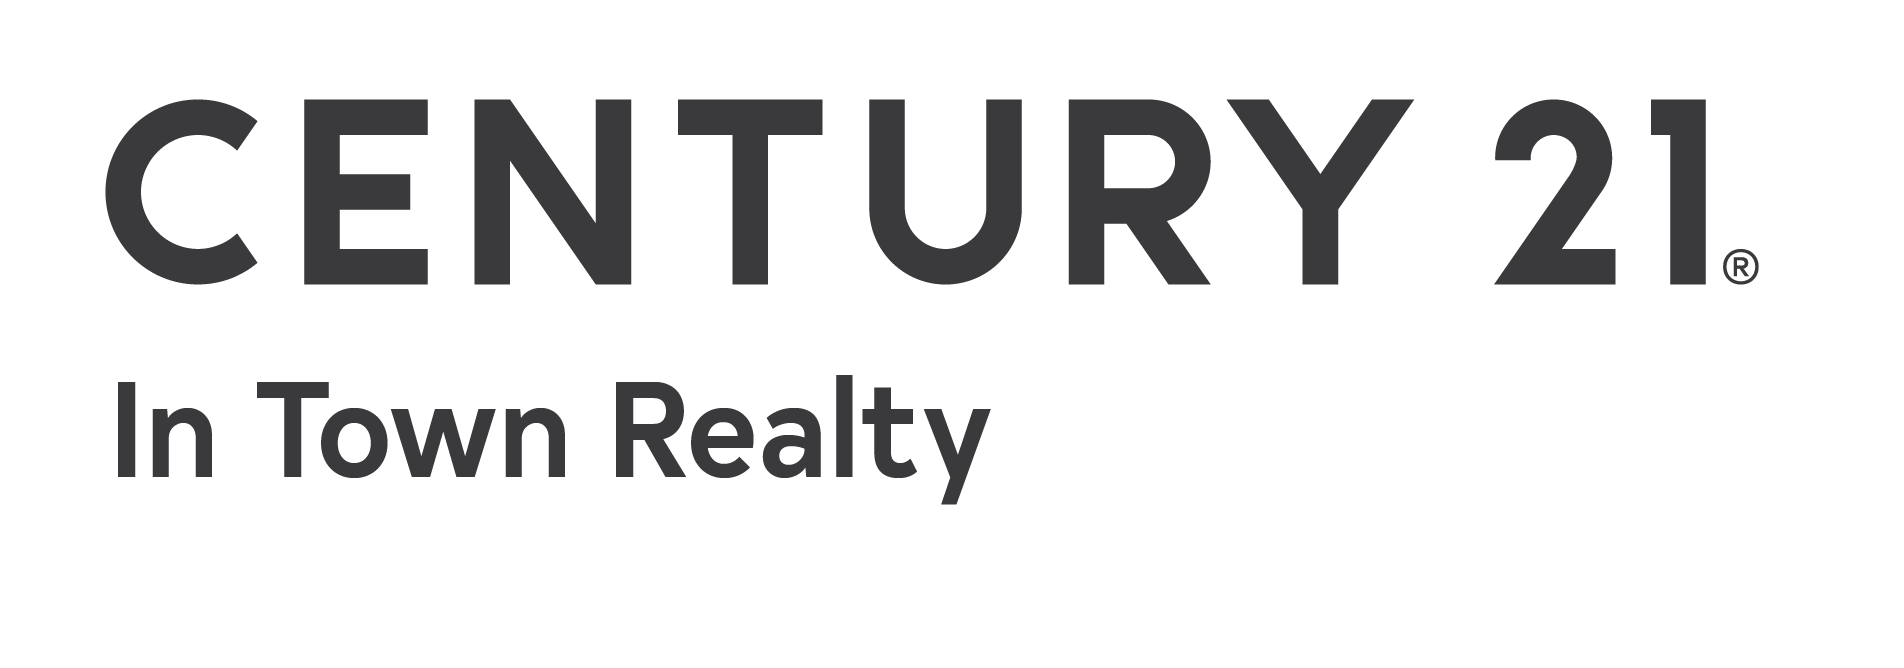 Century 21 In Town Realty Logo